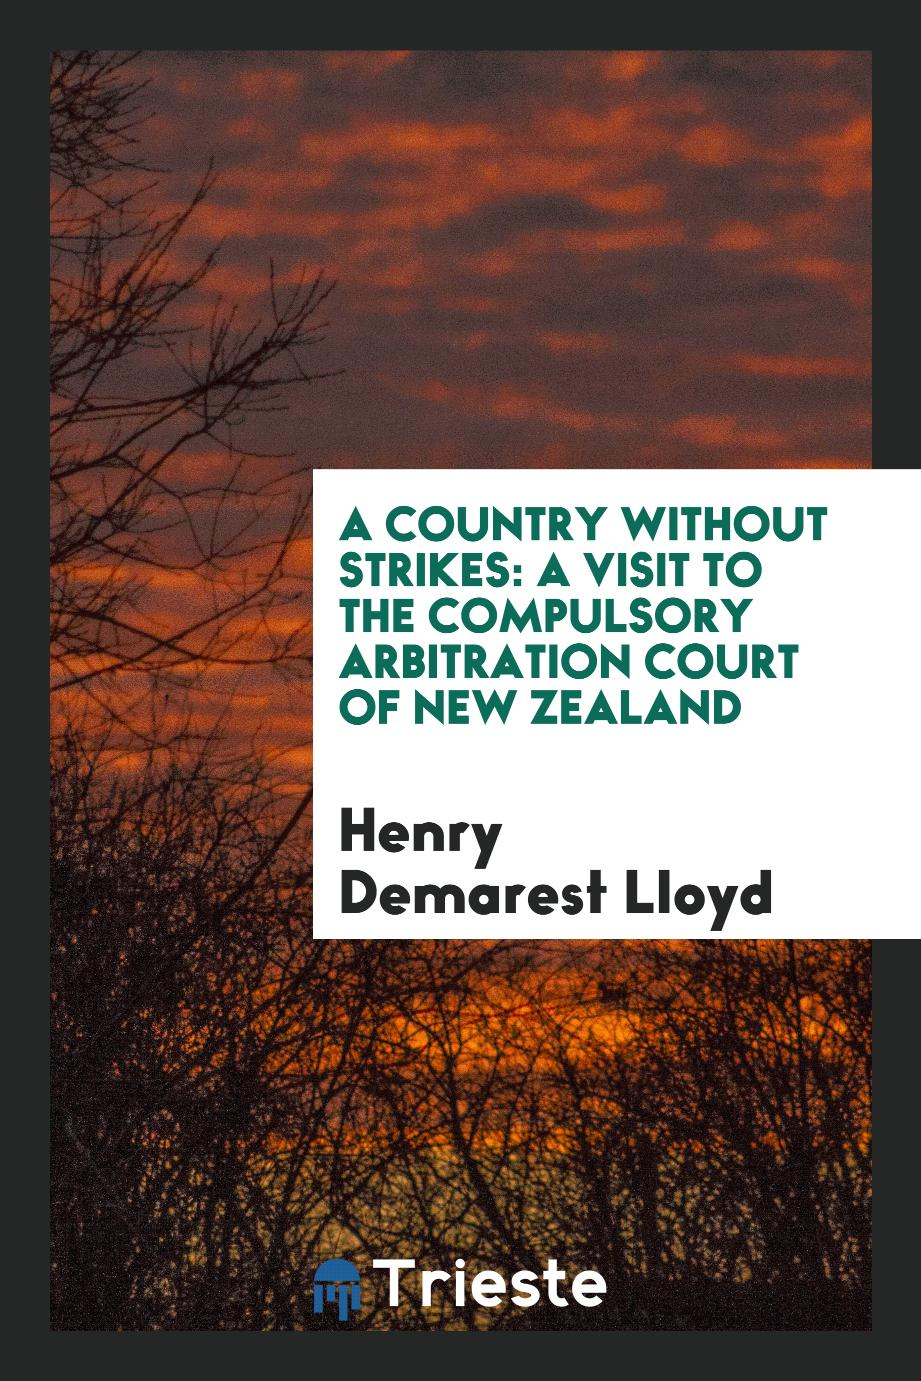 A Country without Strikes: A Visit to the Compulsory Arbitration Court of New Zealand